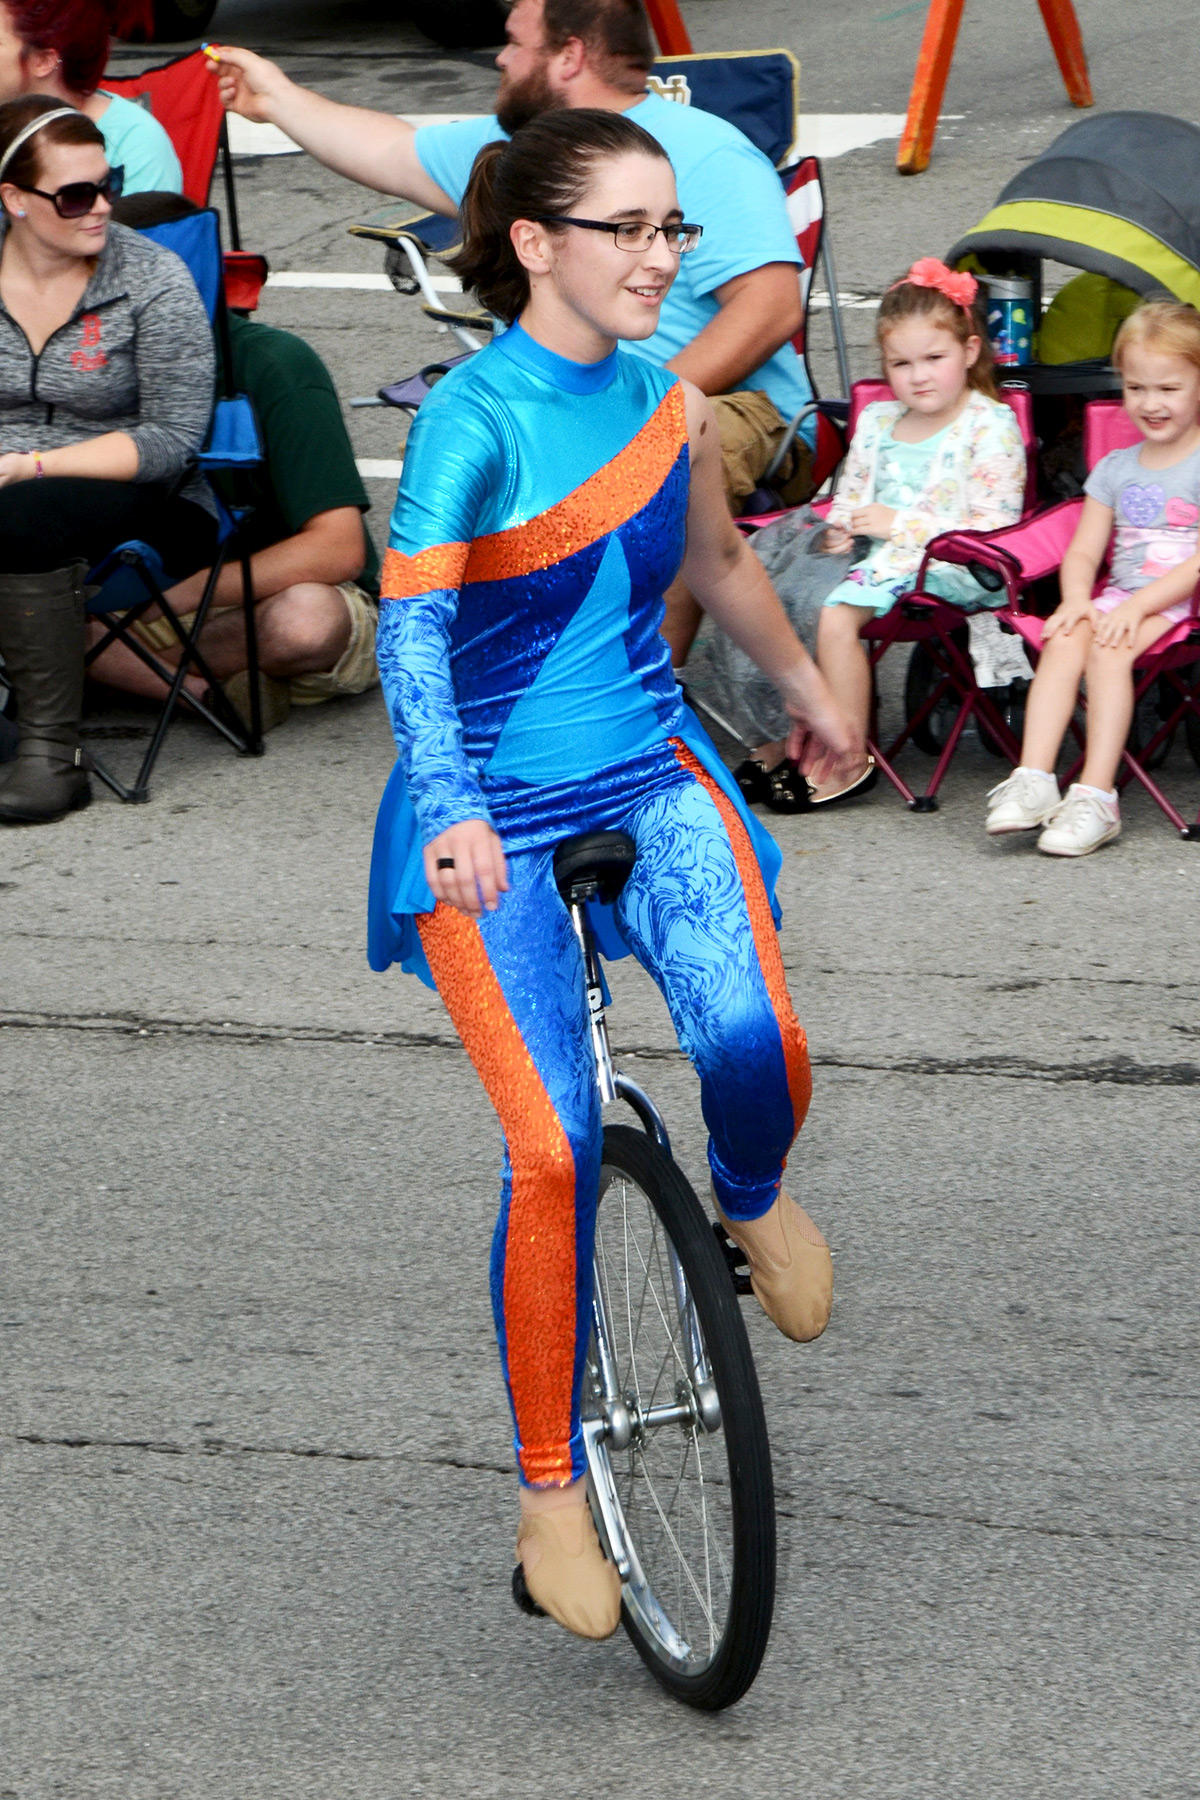 Unicyclist in Ossian Days 2016 Parade